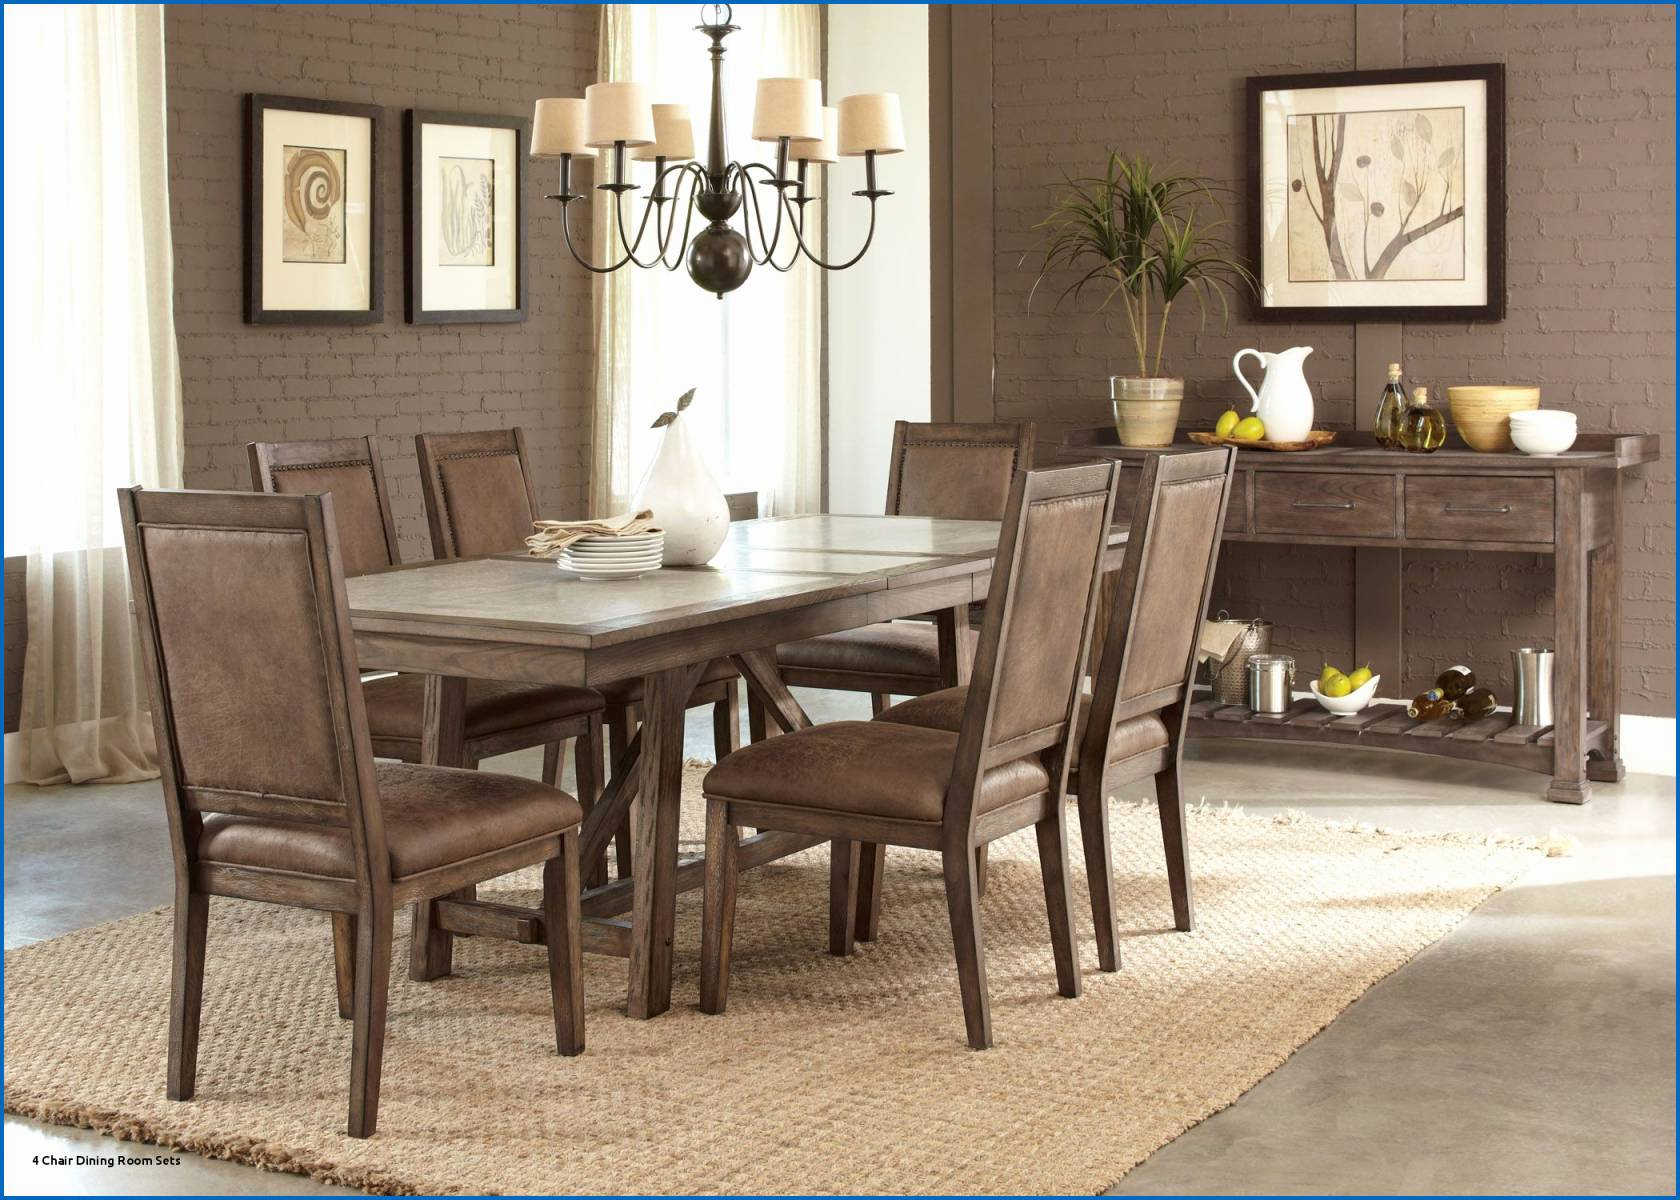 Dining Room Chair Set Small Dining Room Sets Awesome Living Room pertaining to 15 Clever Ways How to Make Dining And Living Room Sets